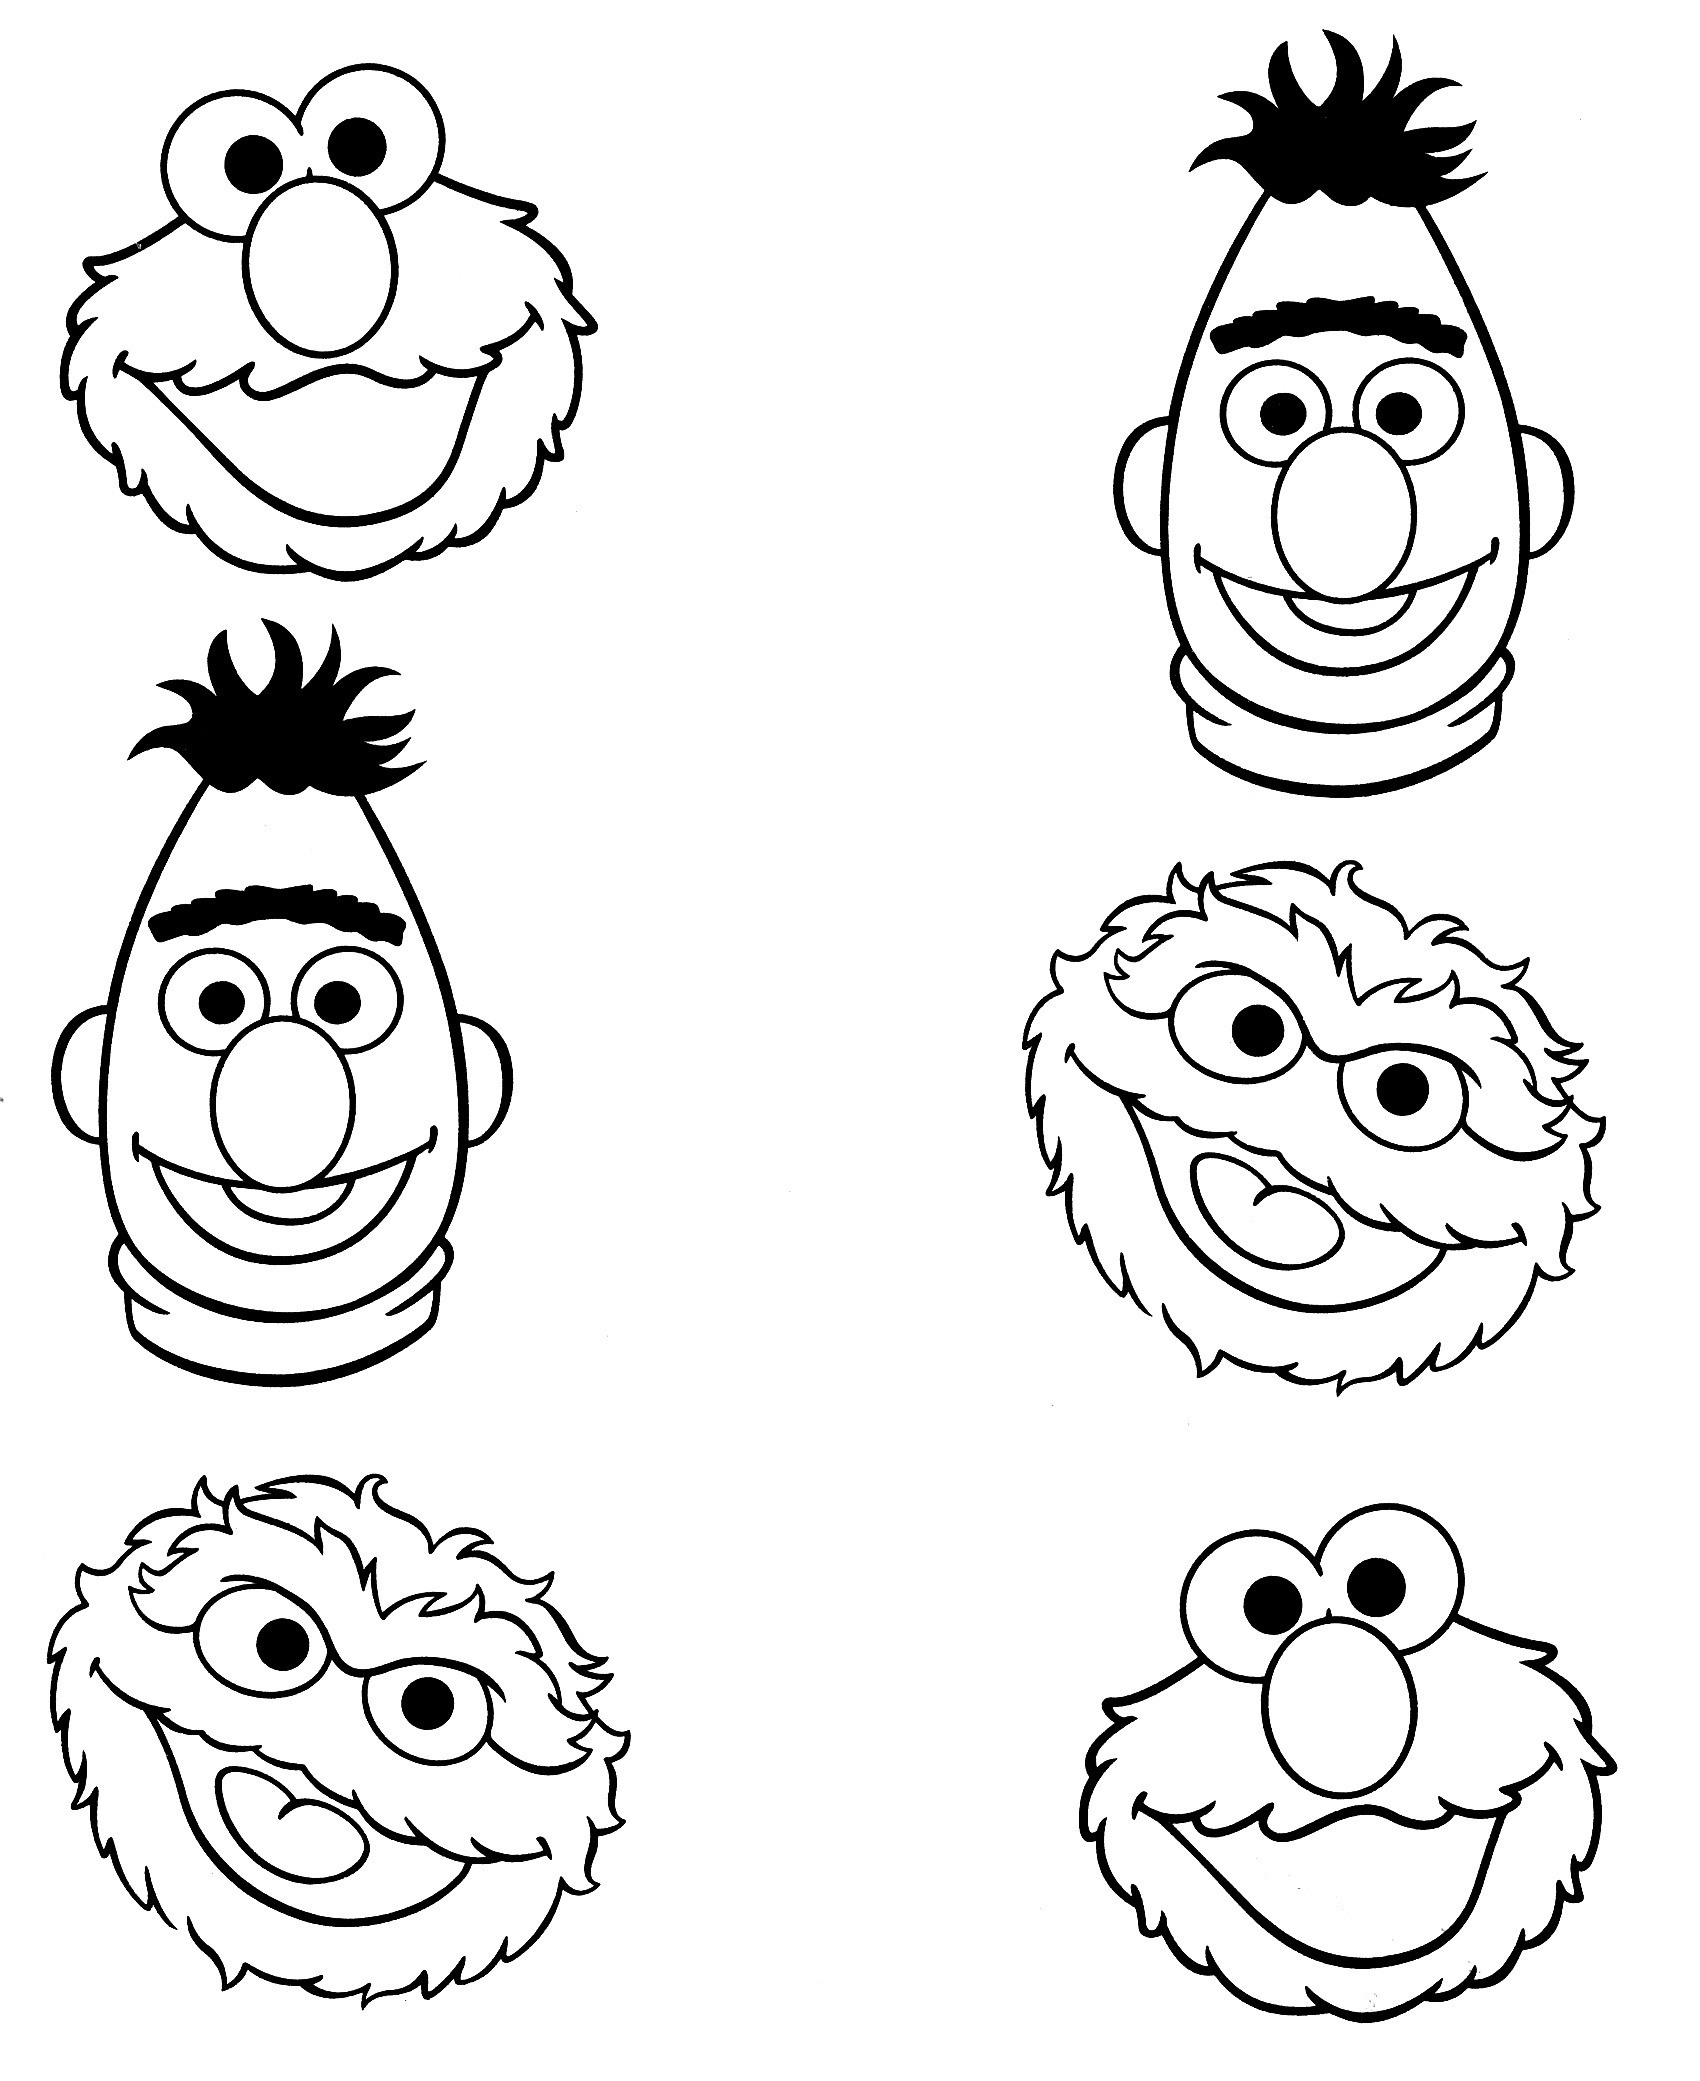 sesame street character coloring pages - photo#4